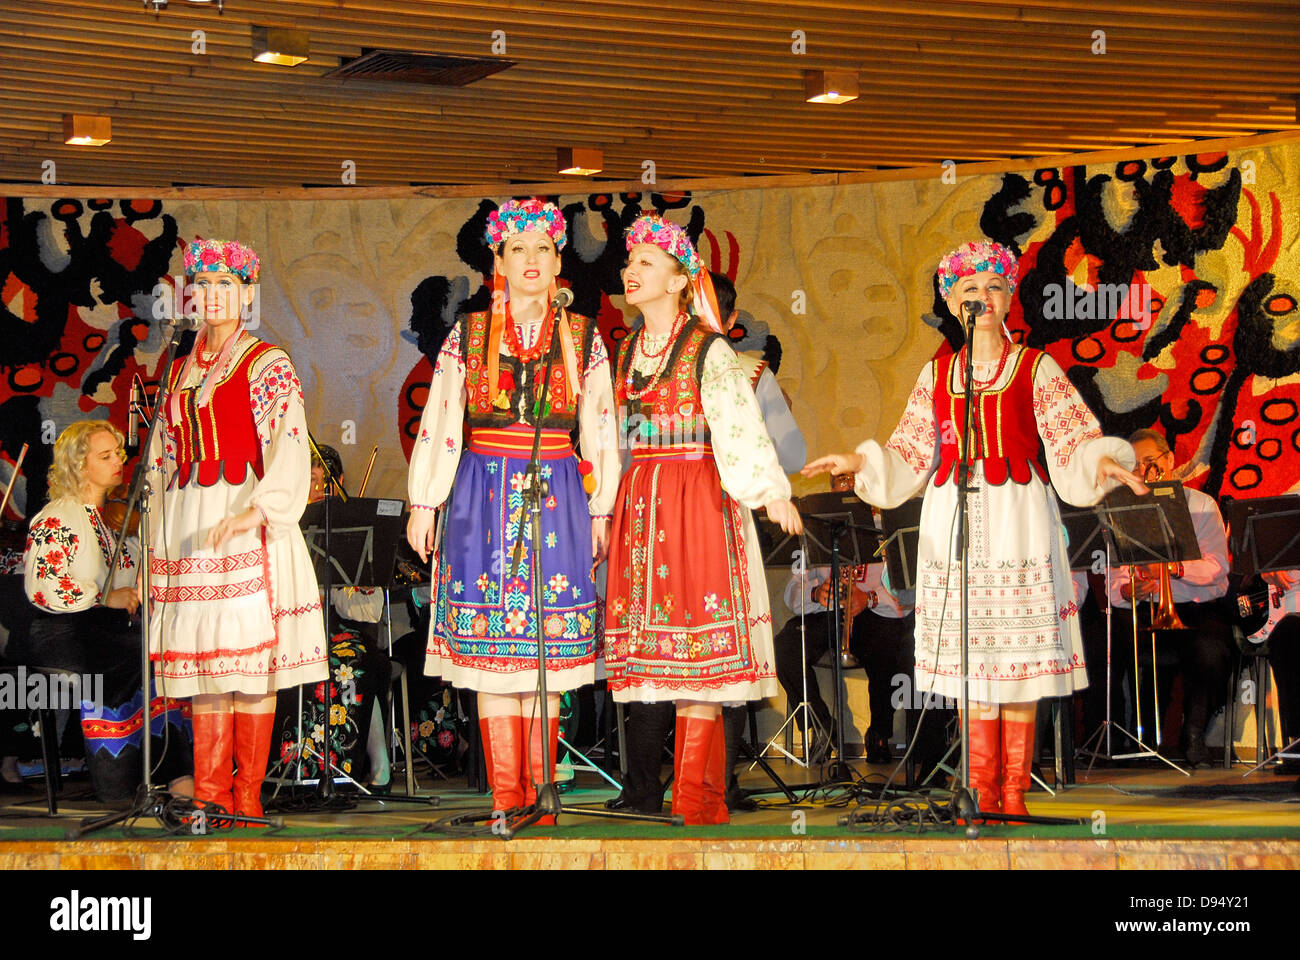 Ukrainian folklorico show at a restaurant in the seaport city of Yalta, Crimea on the Black Sea. Stock Photo